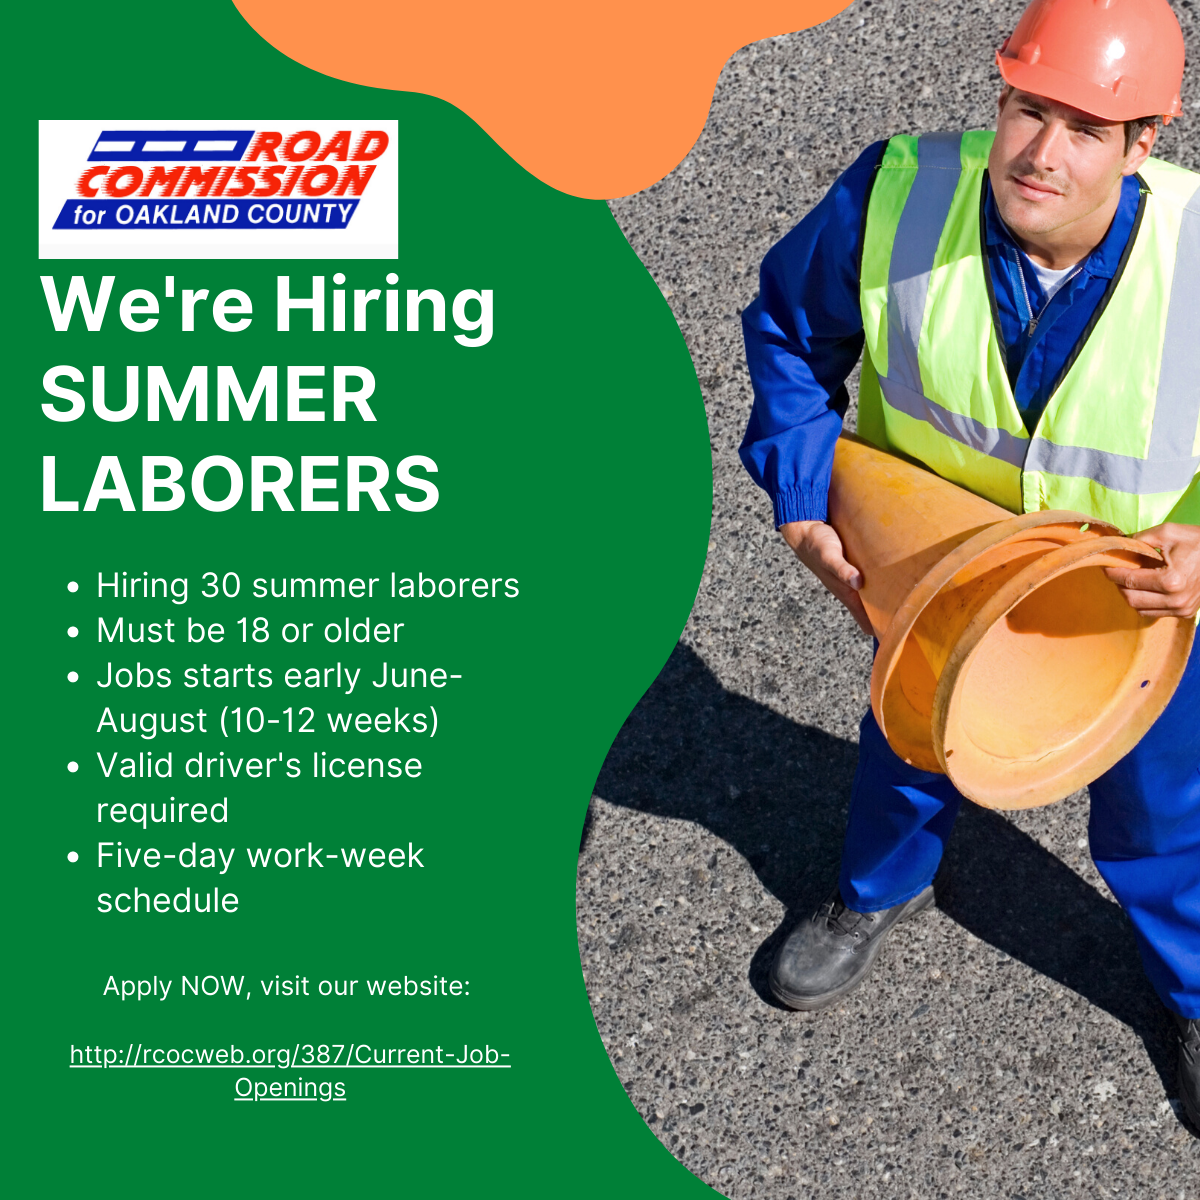 Hiring summer laborers image with basic information on job requirements